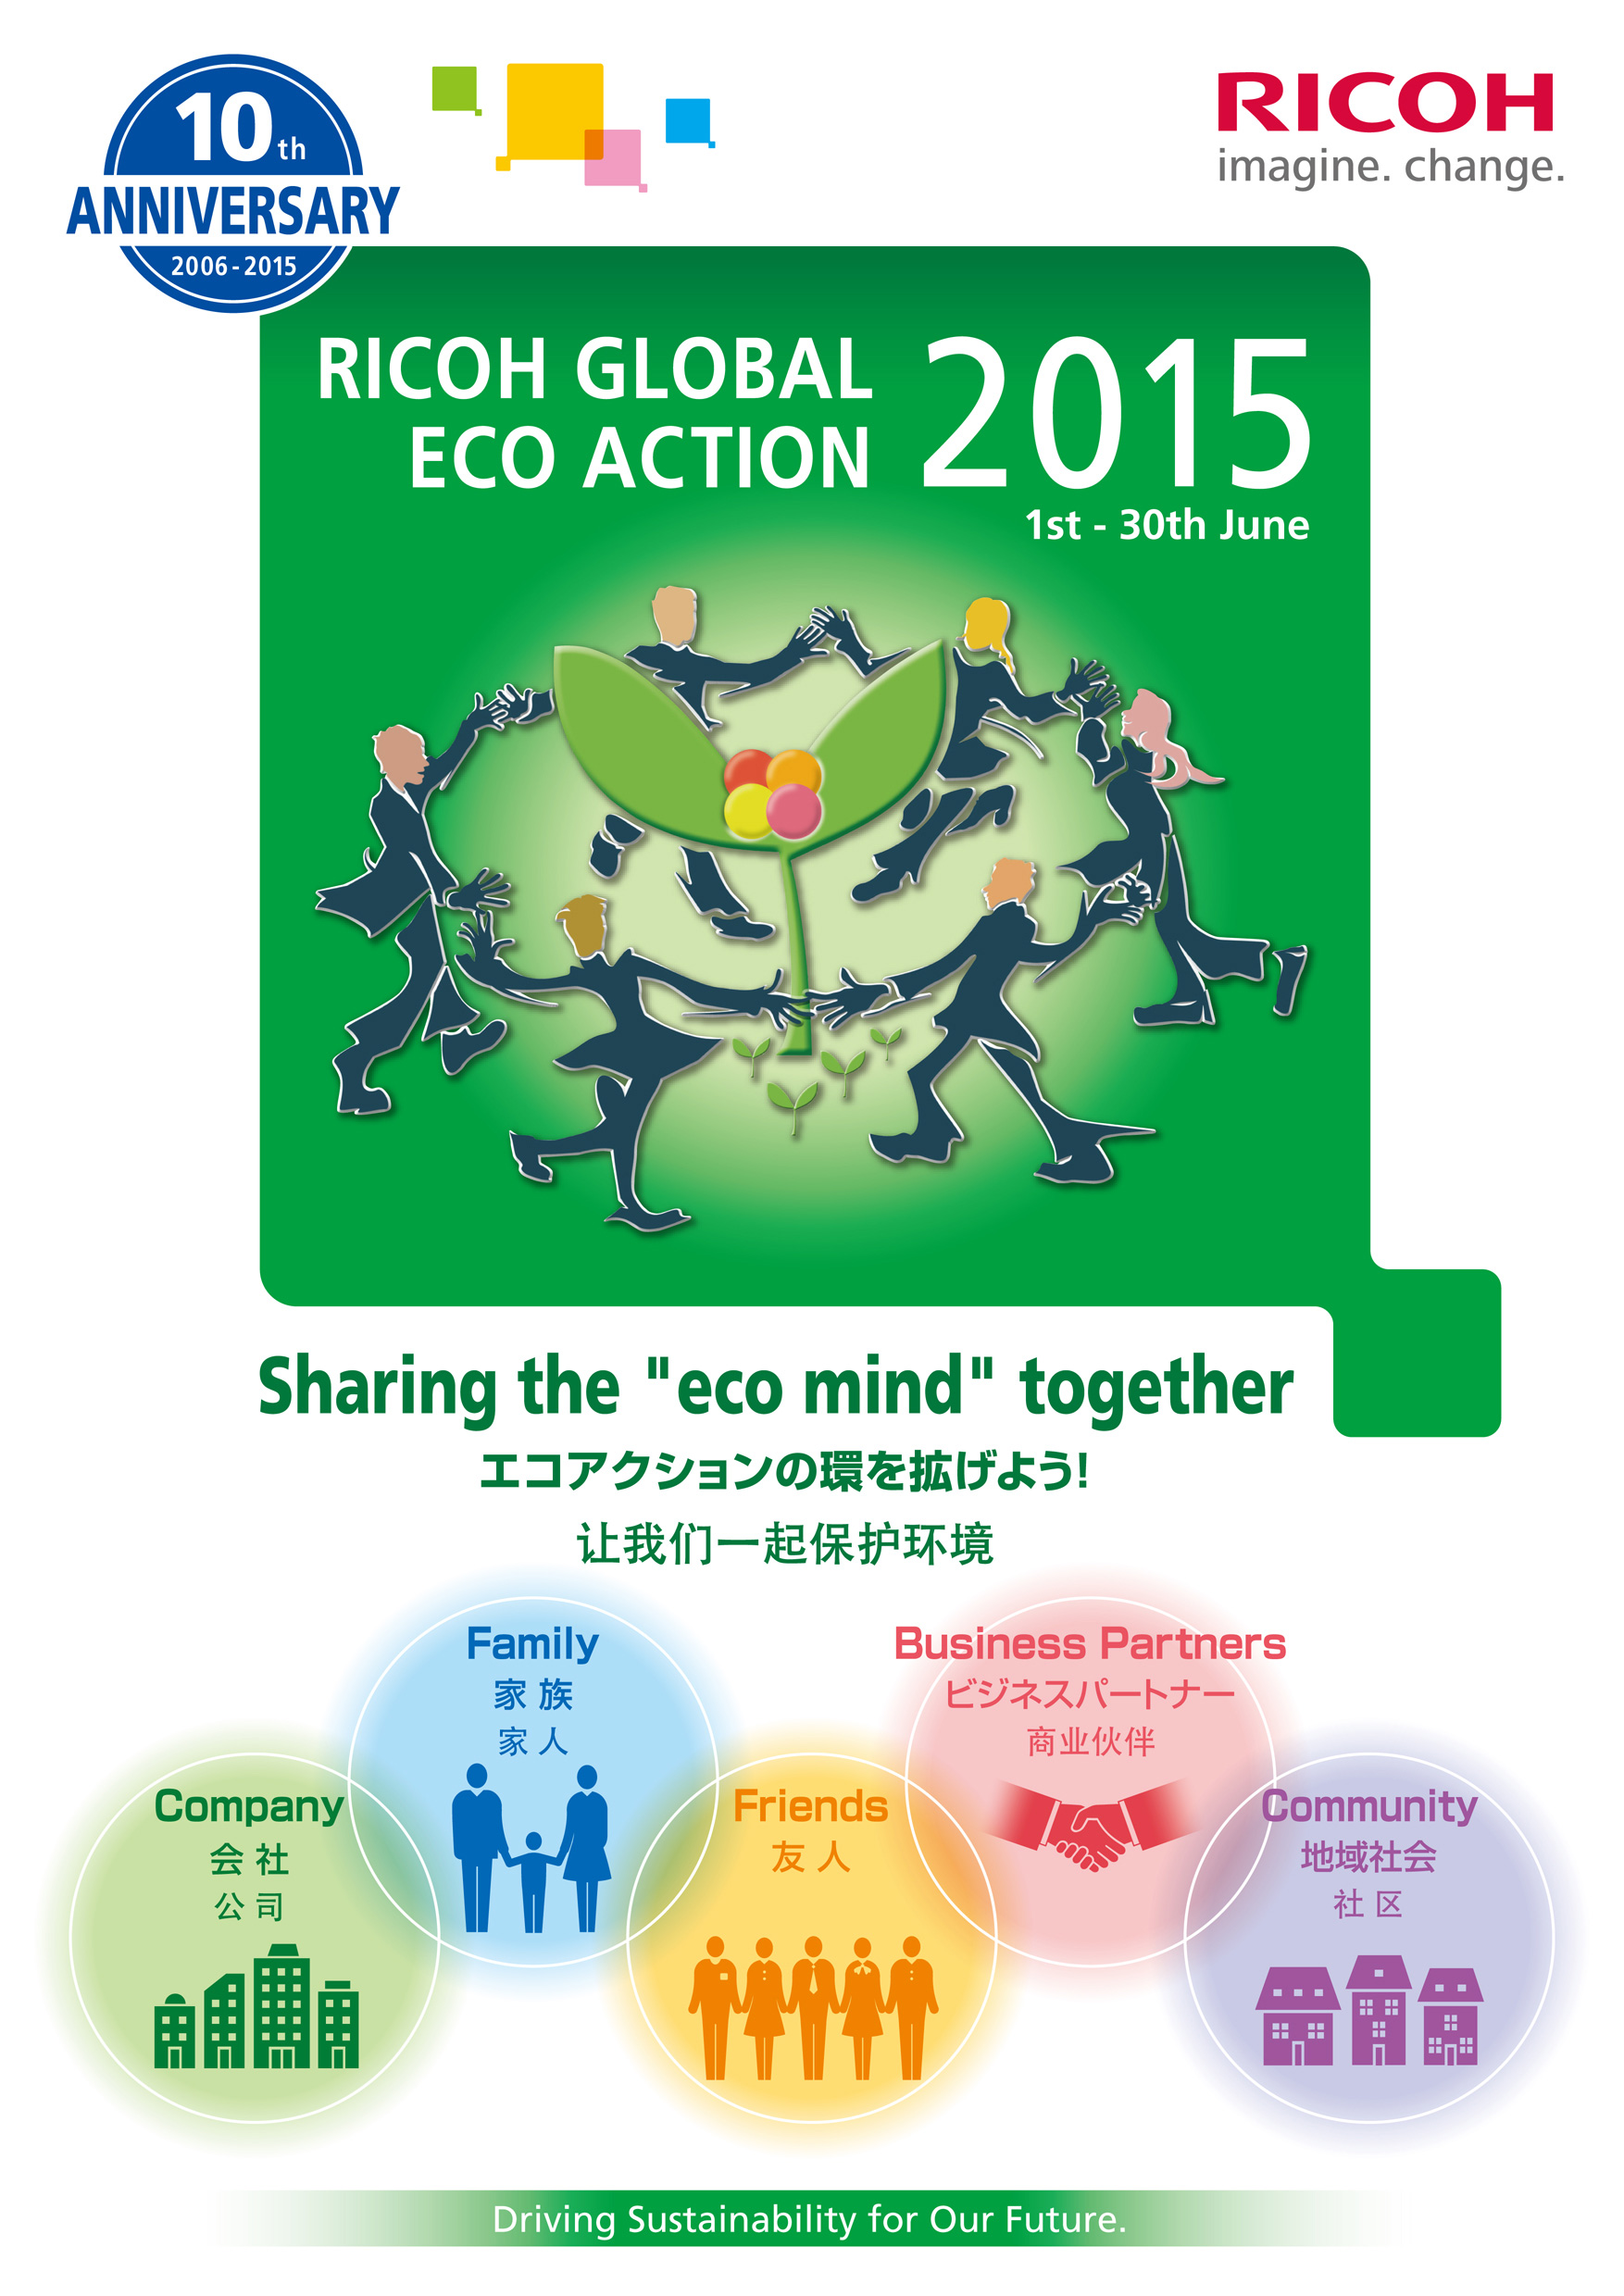 image:Poster for Ricoh Global Eco Action 2015